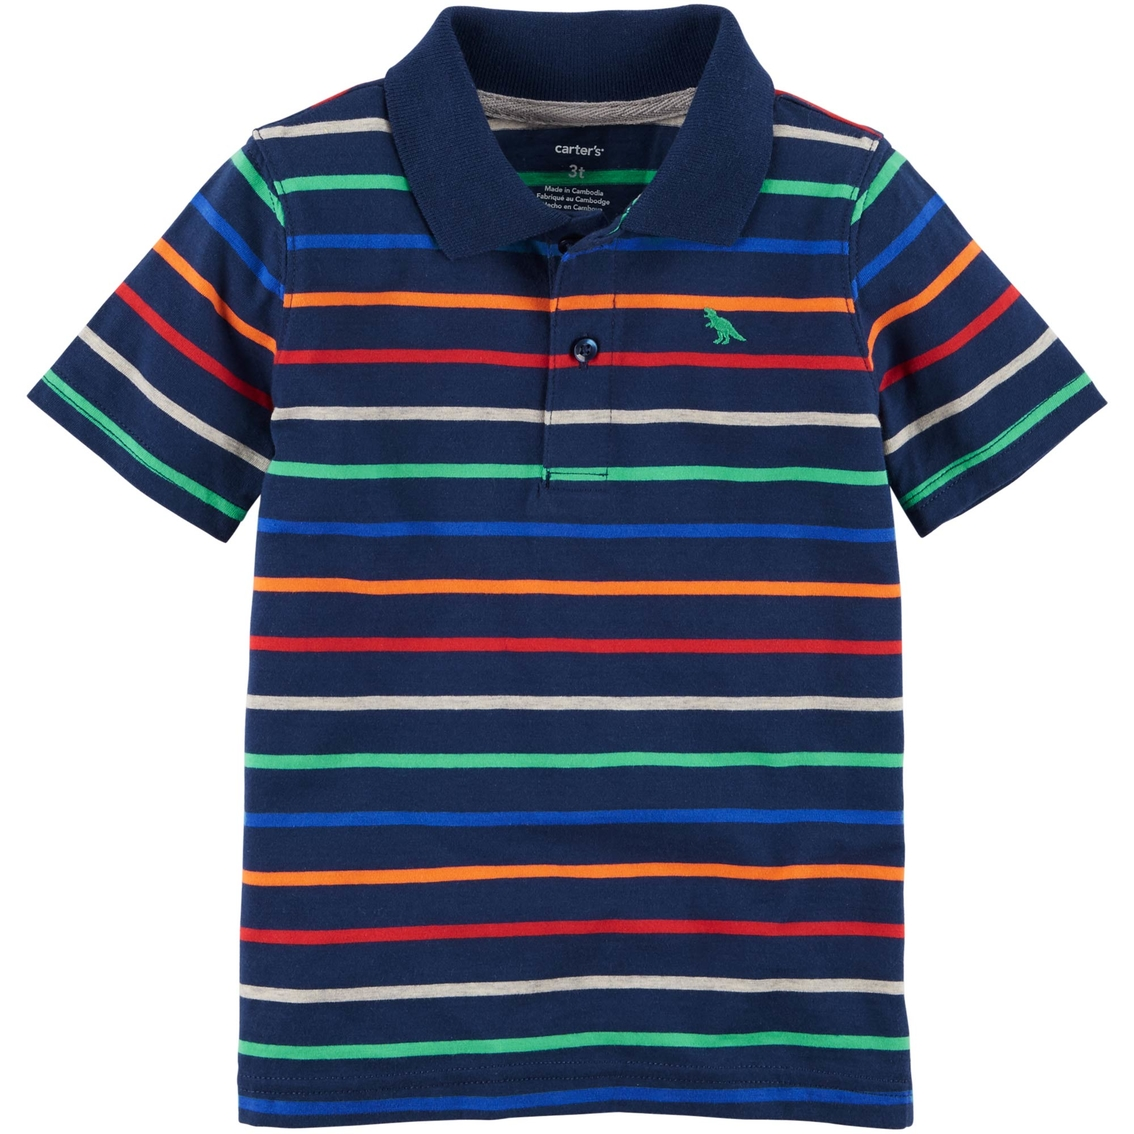 41e56d2f6 Carter's Toddler Boys Rainbow Striped Polo Shirt | Toddler Boys 2t ...